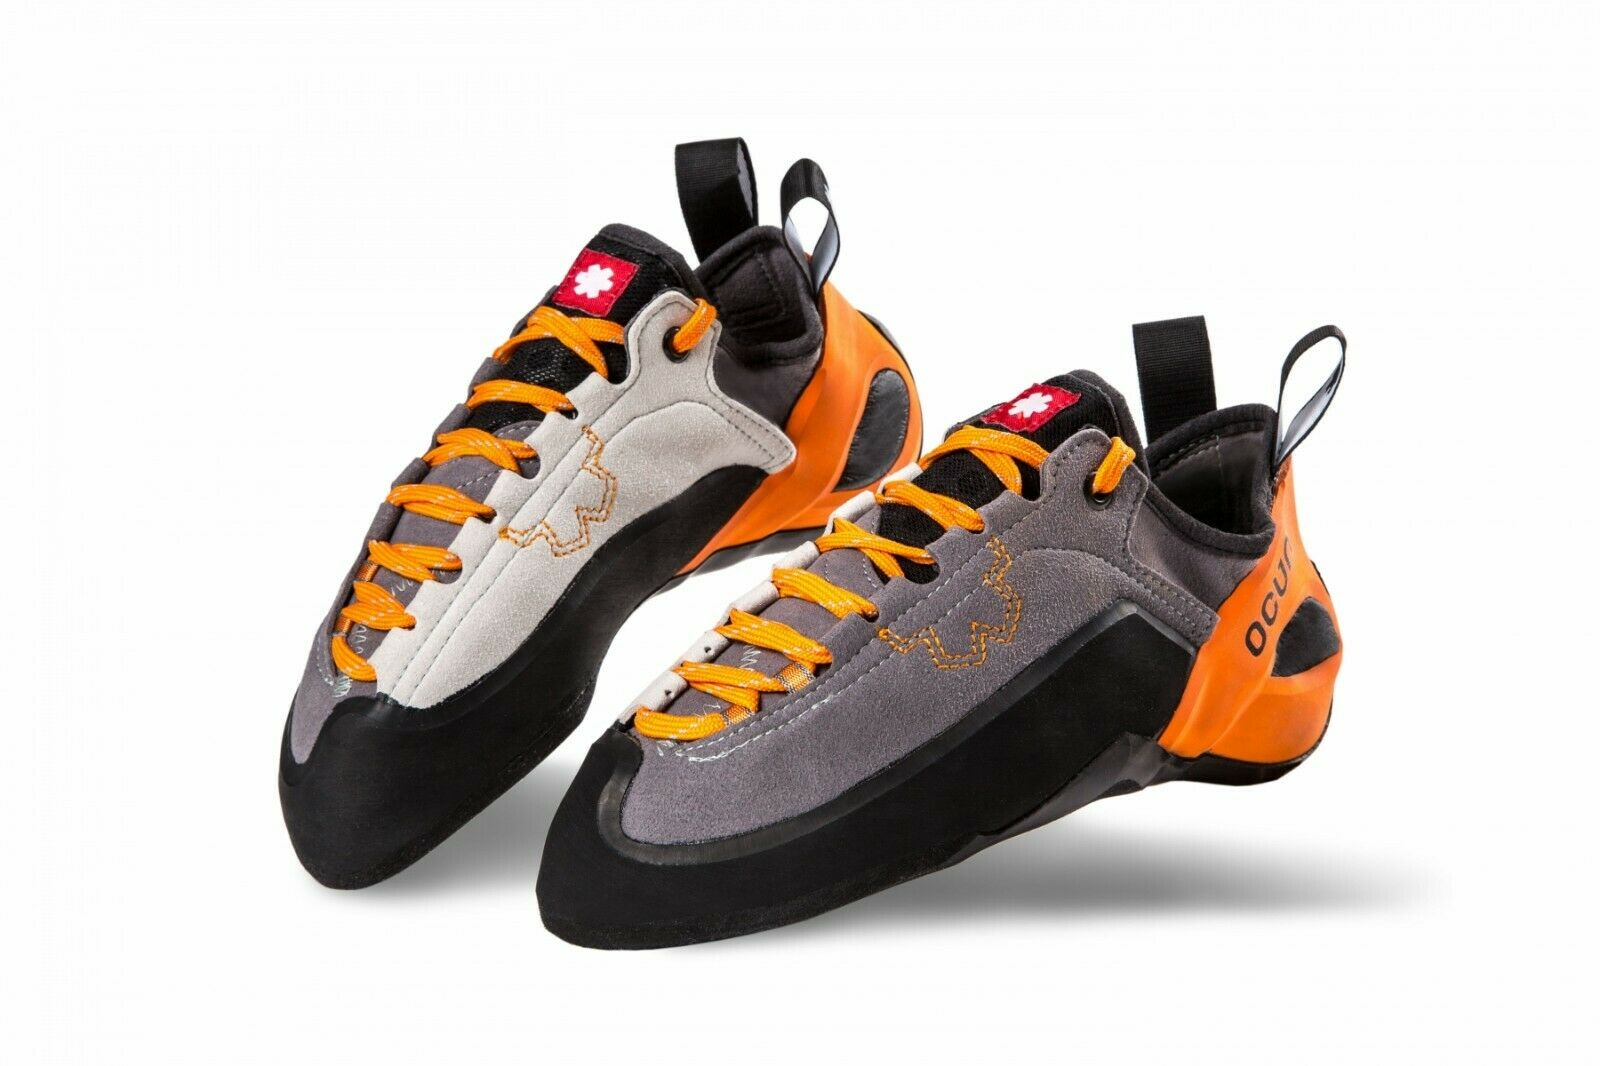 OCUN JETT LU - Climbing shoes good for all-day climbing - Ask me about the size